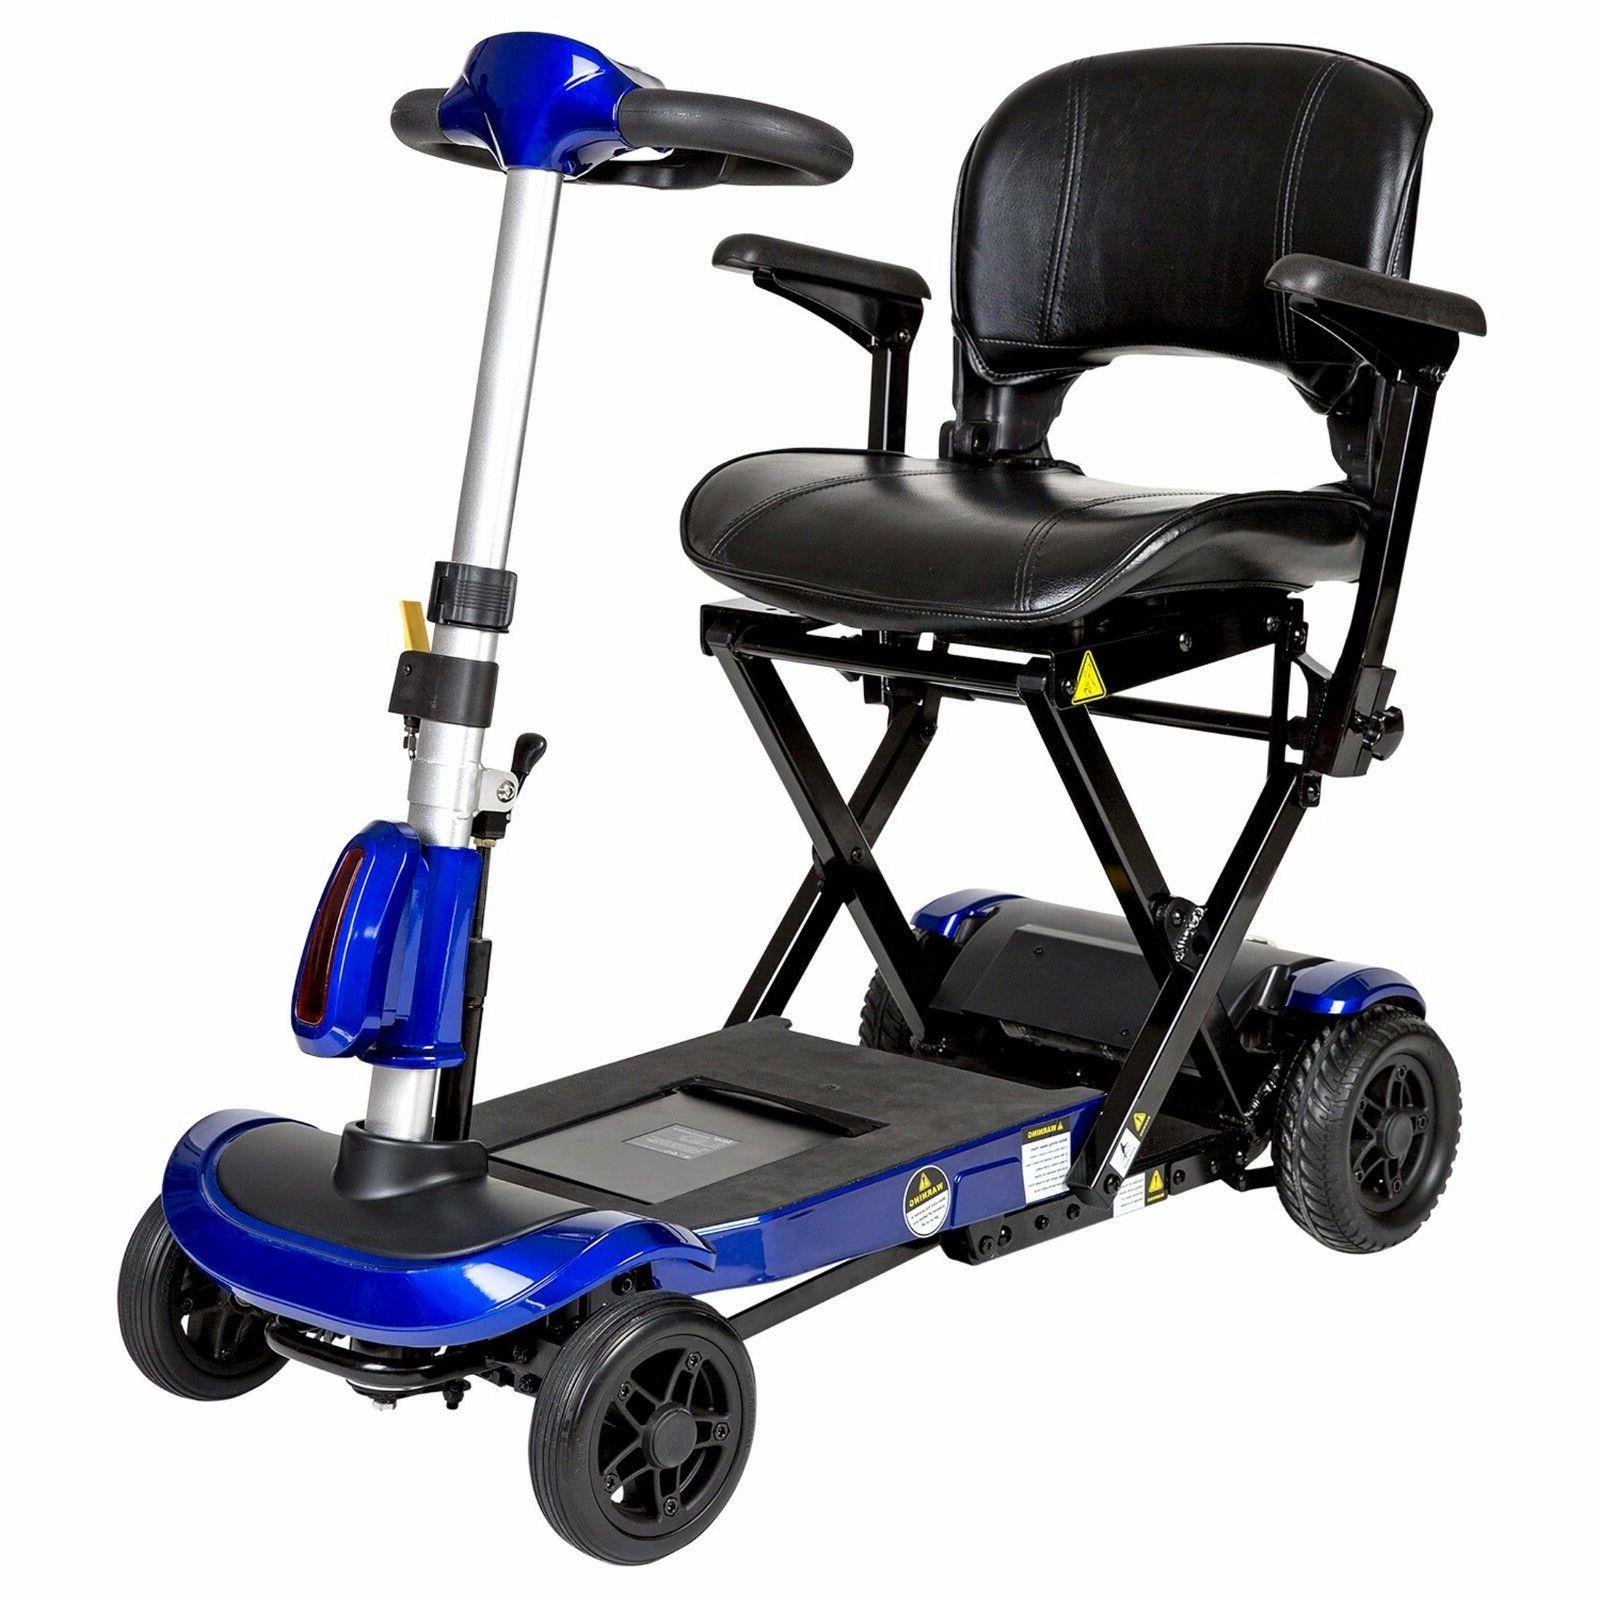 Drive 4 Scooter, 300 lb